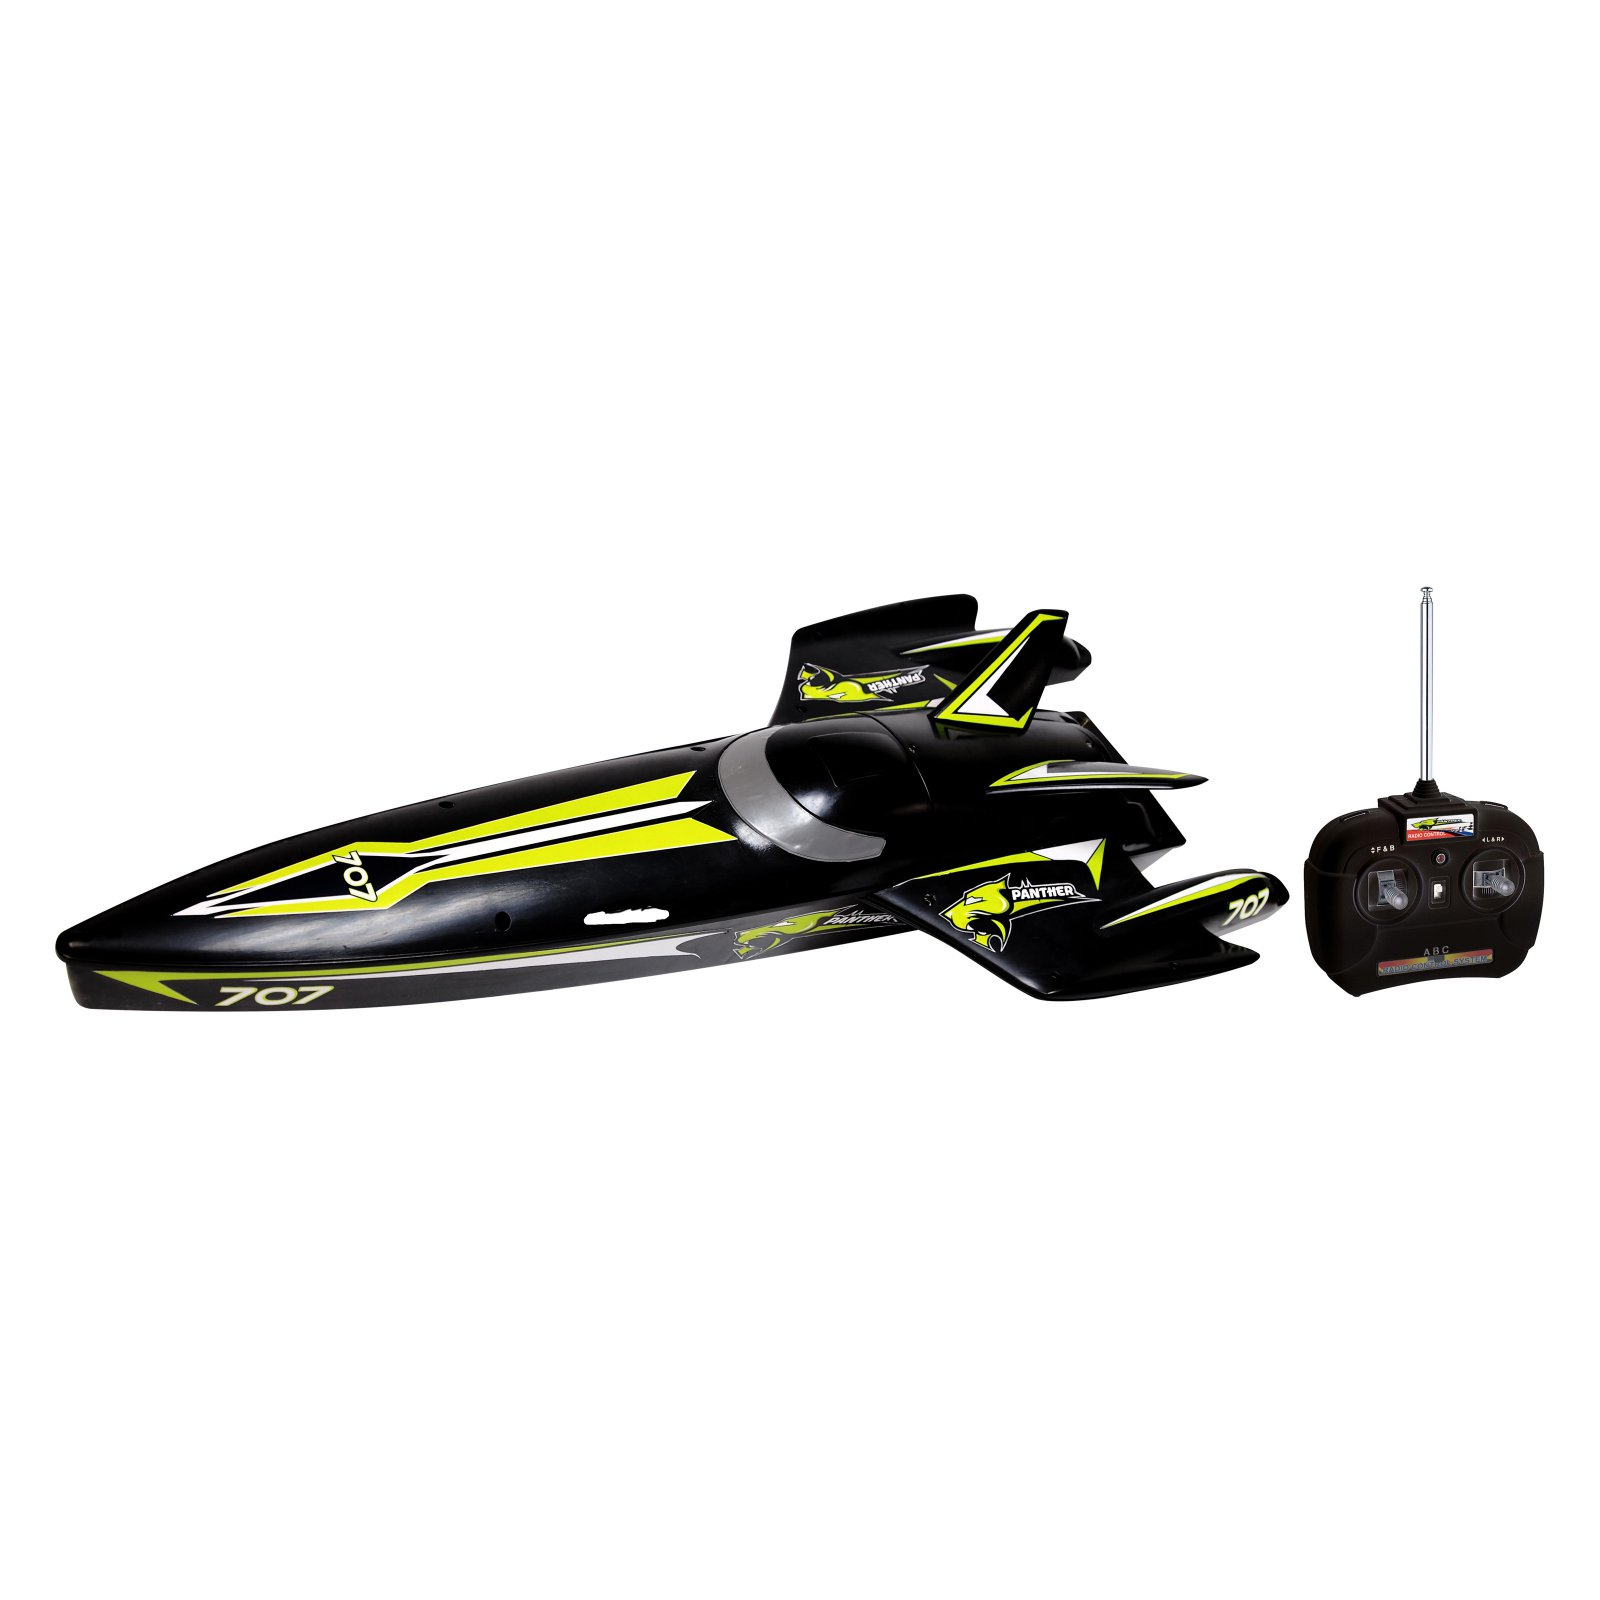 Golden Bright Radio Control Sea Panther Boat by Golden Bright